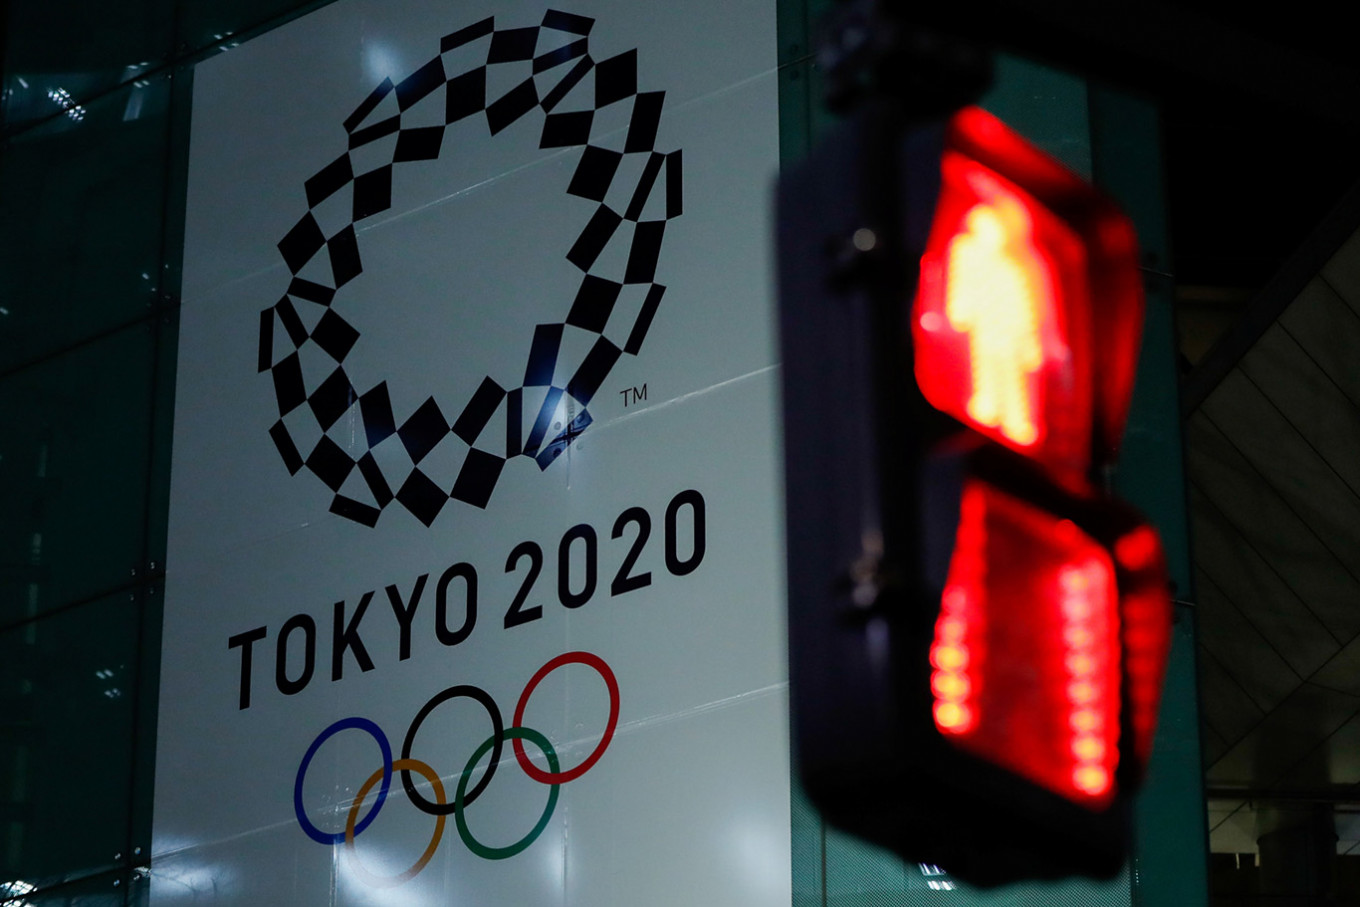 Olympic postponement may be 'inevitable', Japan's PM says